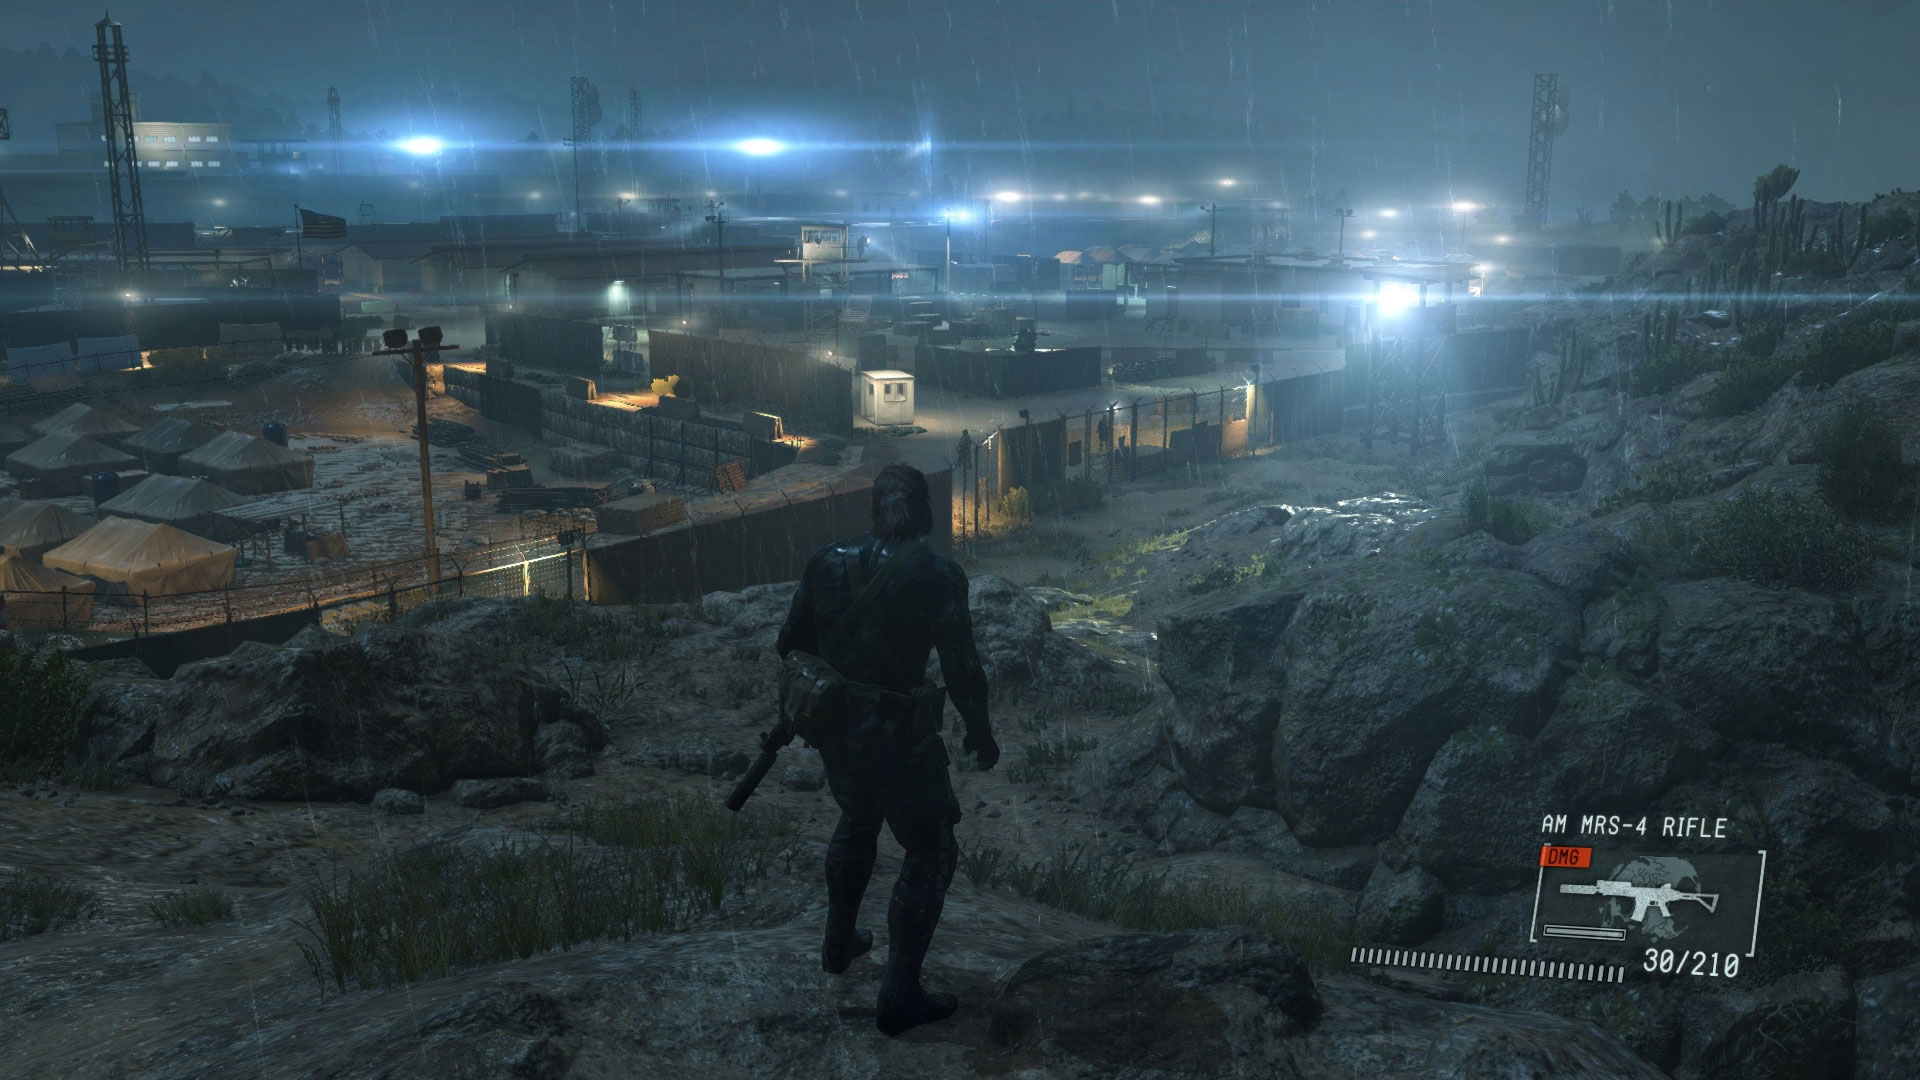 Metal-Gear-Solid-V-Ground-Zeroes-PC-Screenshot-2